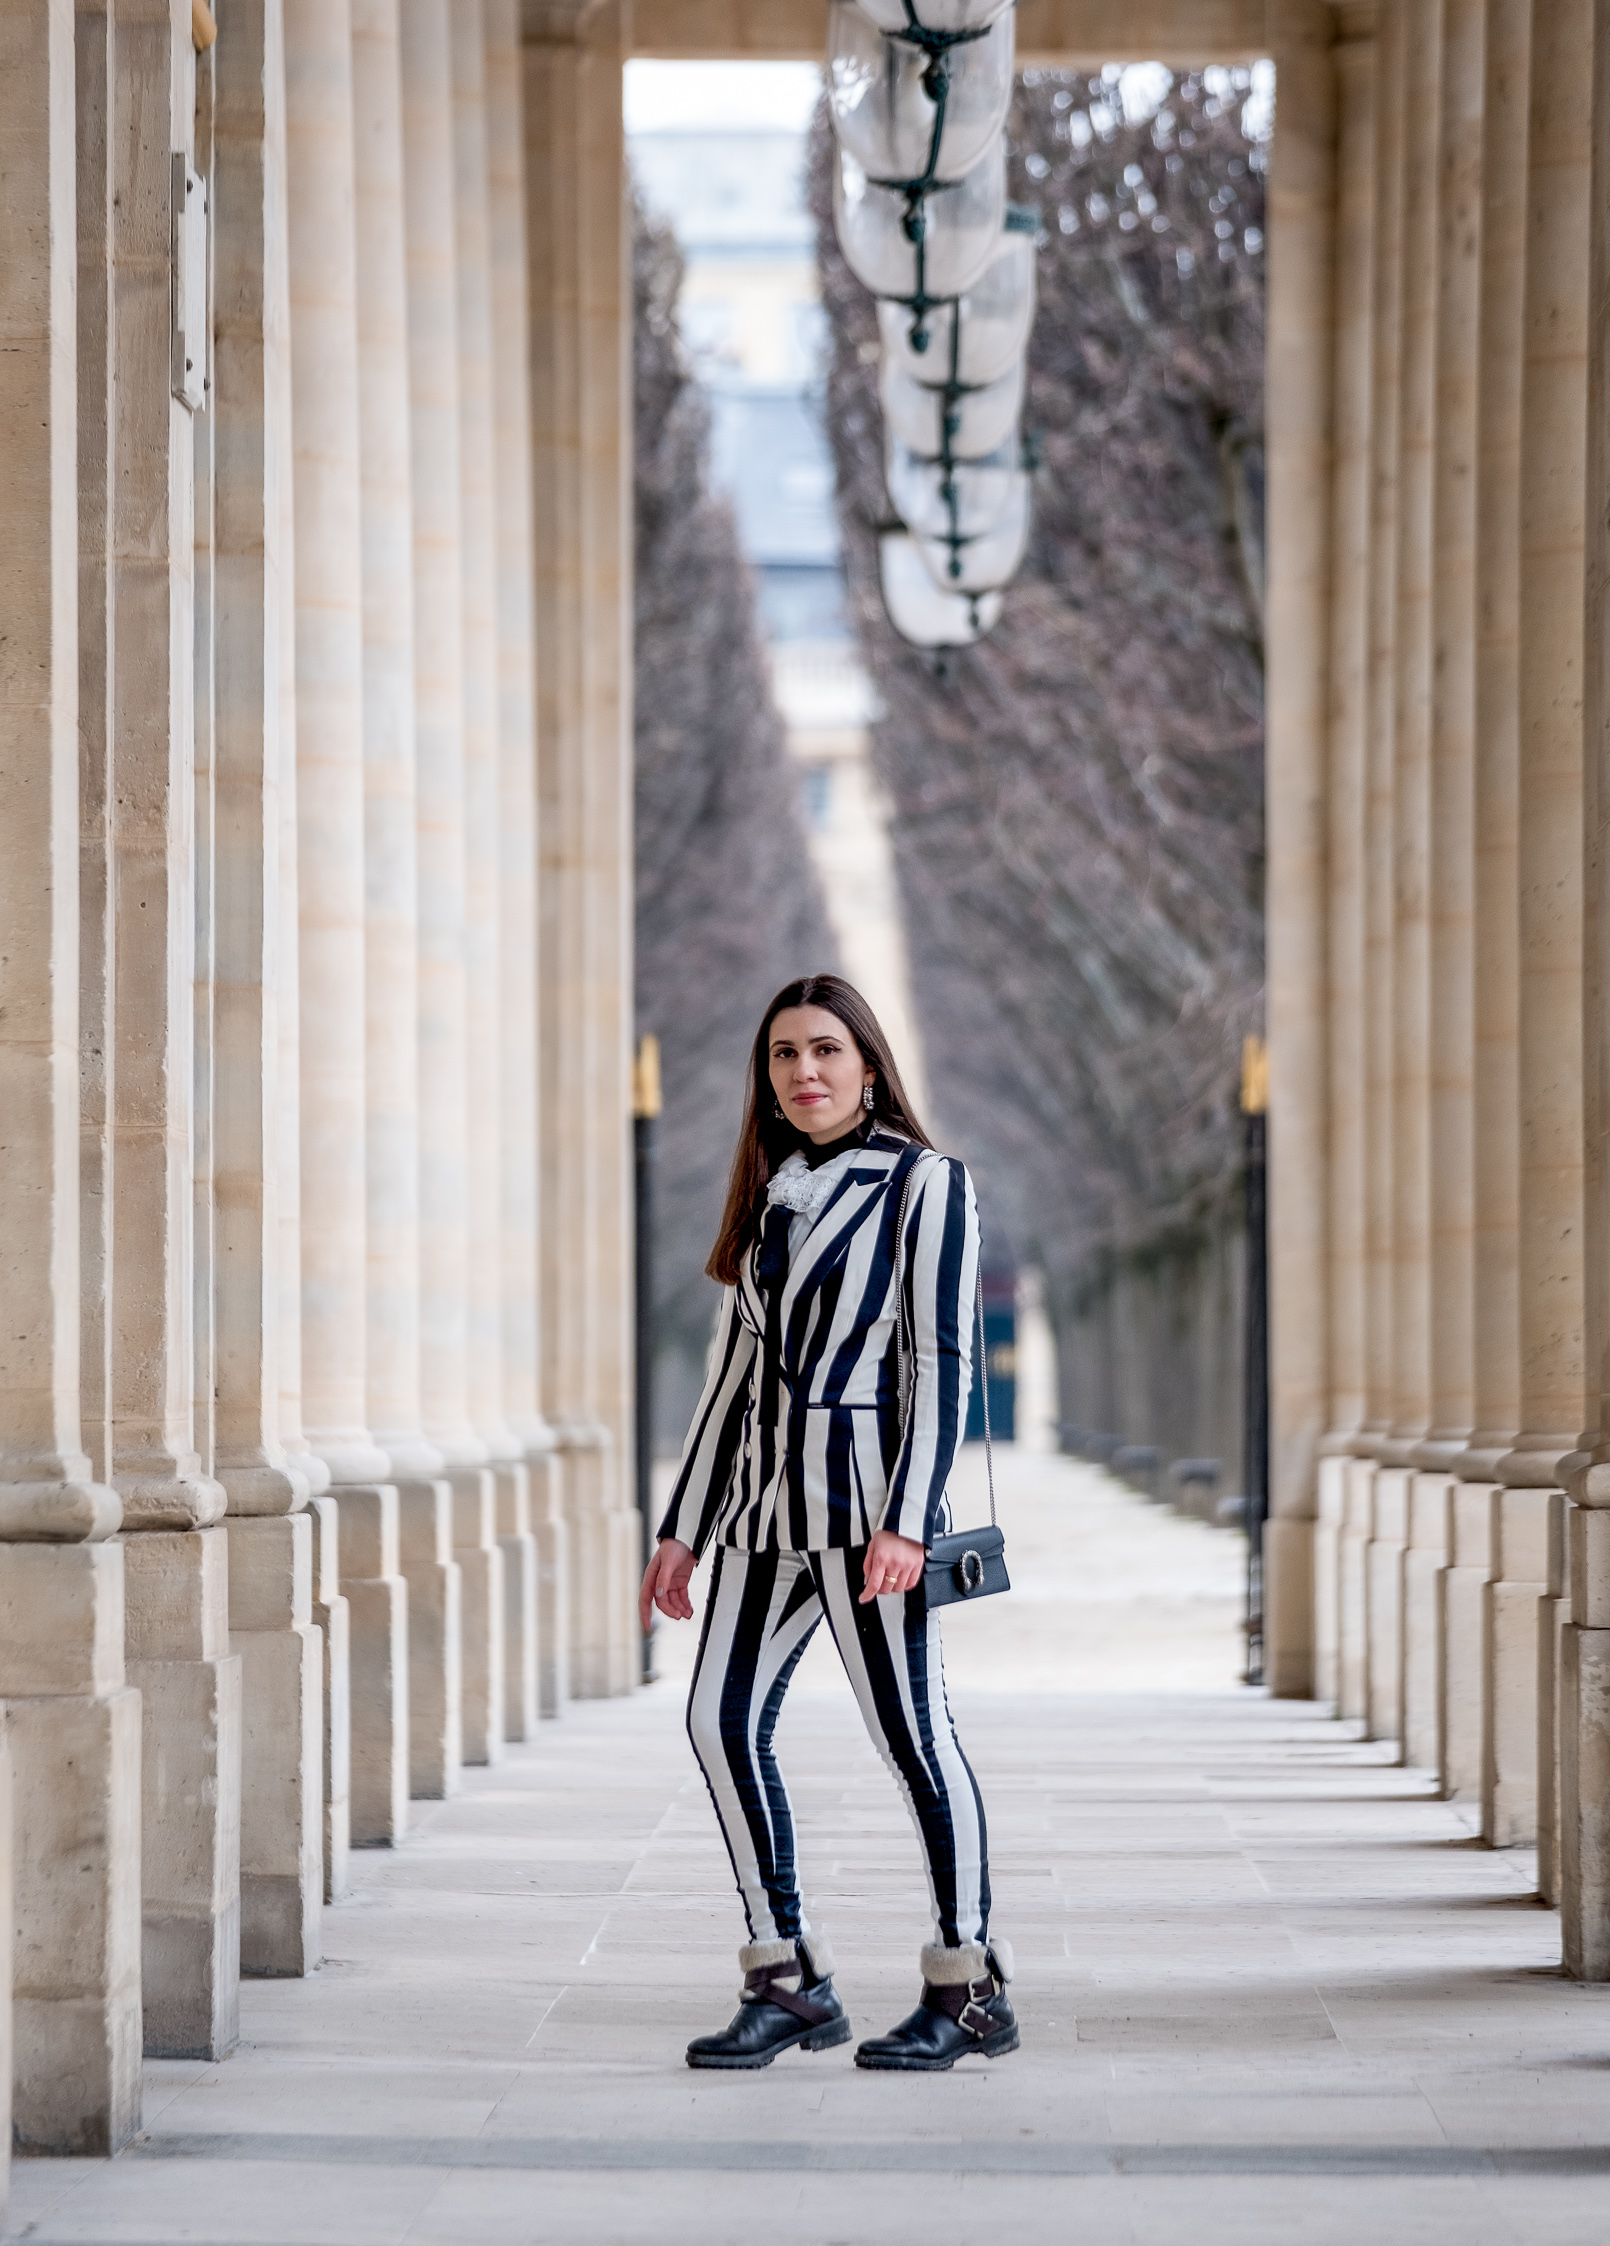 Le Fashionaire stripes black white hm blazer black white vertical stripes hm trousers gucci mini dionysus black silver tiger bag black zara boots 2342 EN stripes black white hm blazer black white vertical stripes hm trousers gucci mini dionysus black silver tiger bag black zara boots 2342 EN